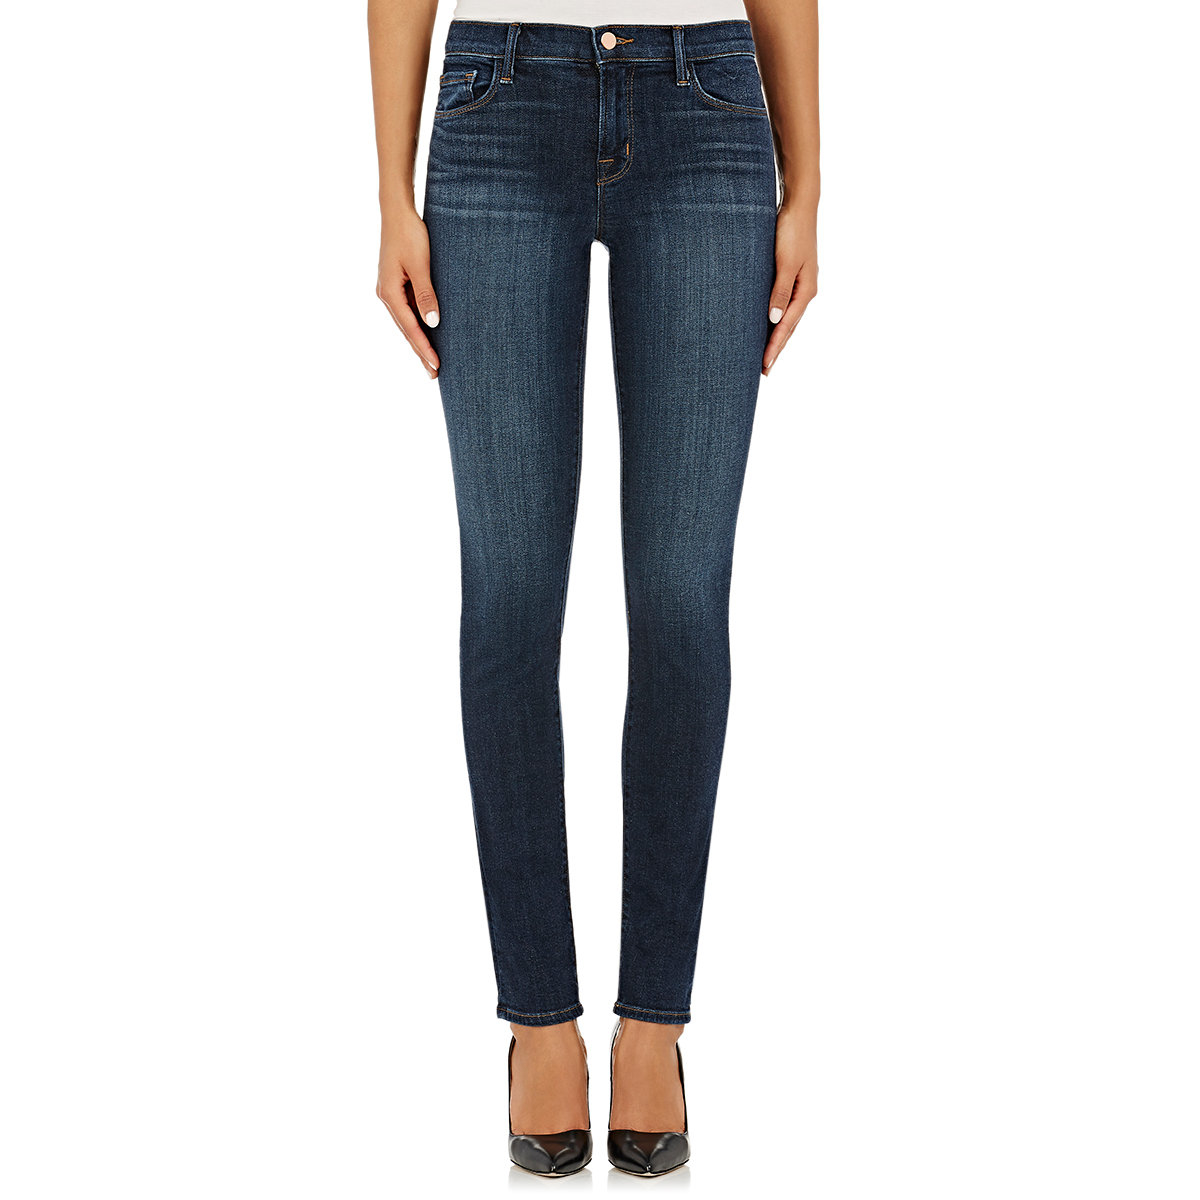 Lyst - J Brand Women's Mid-rise Rail Jeans in Blue